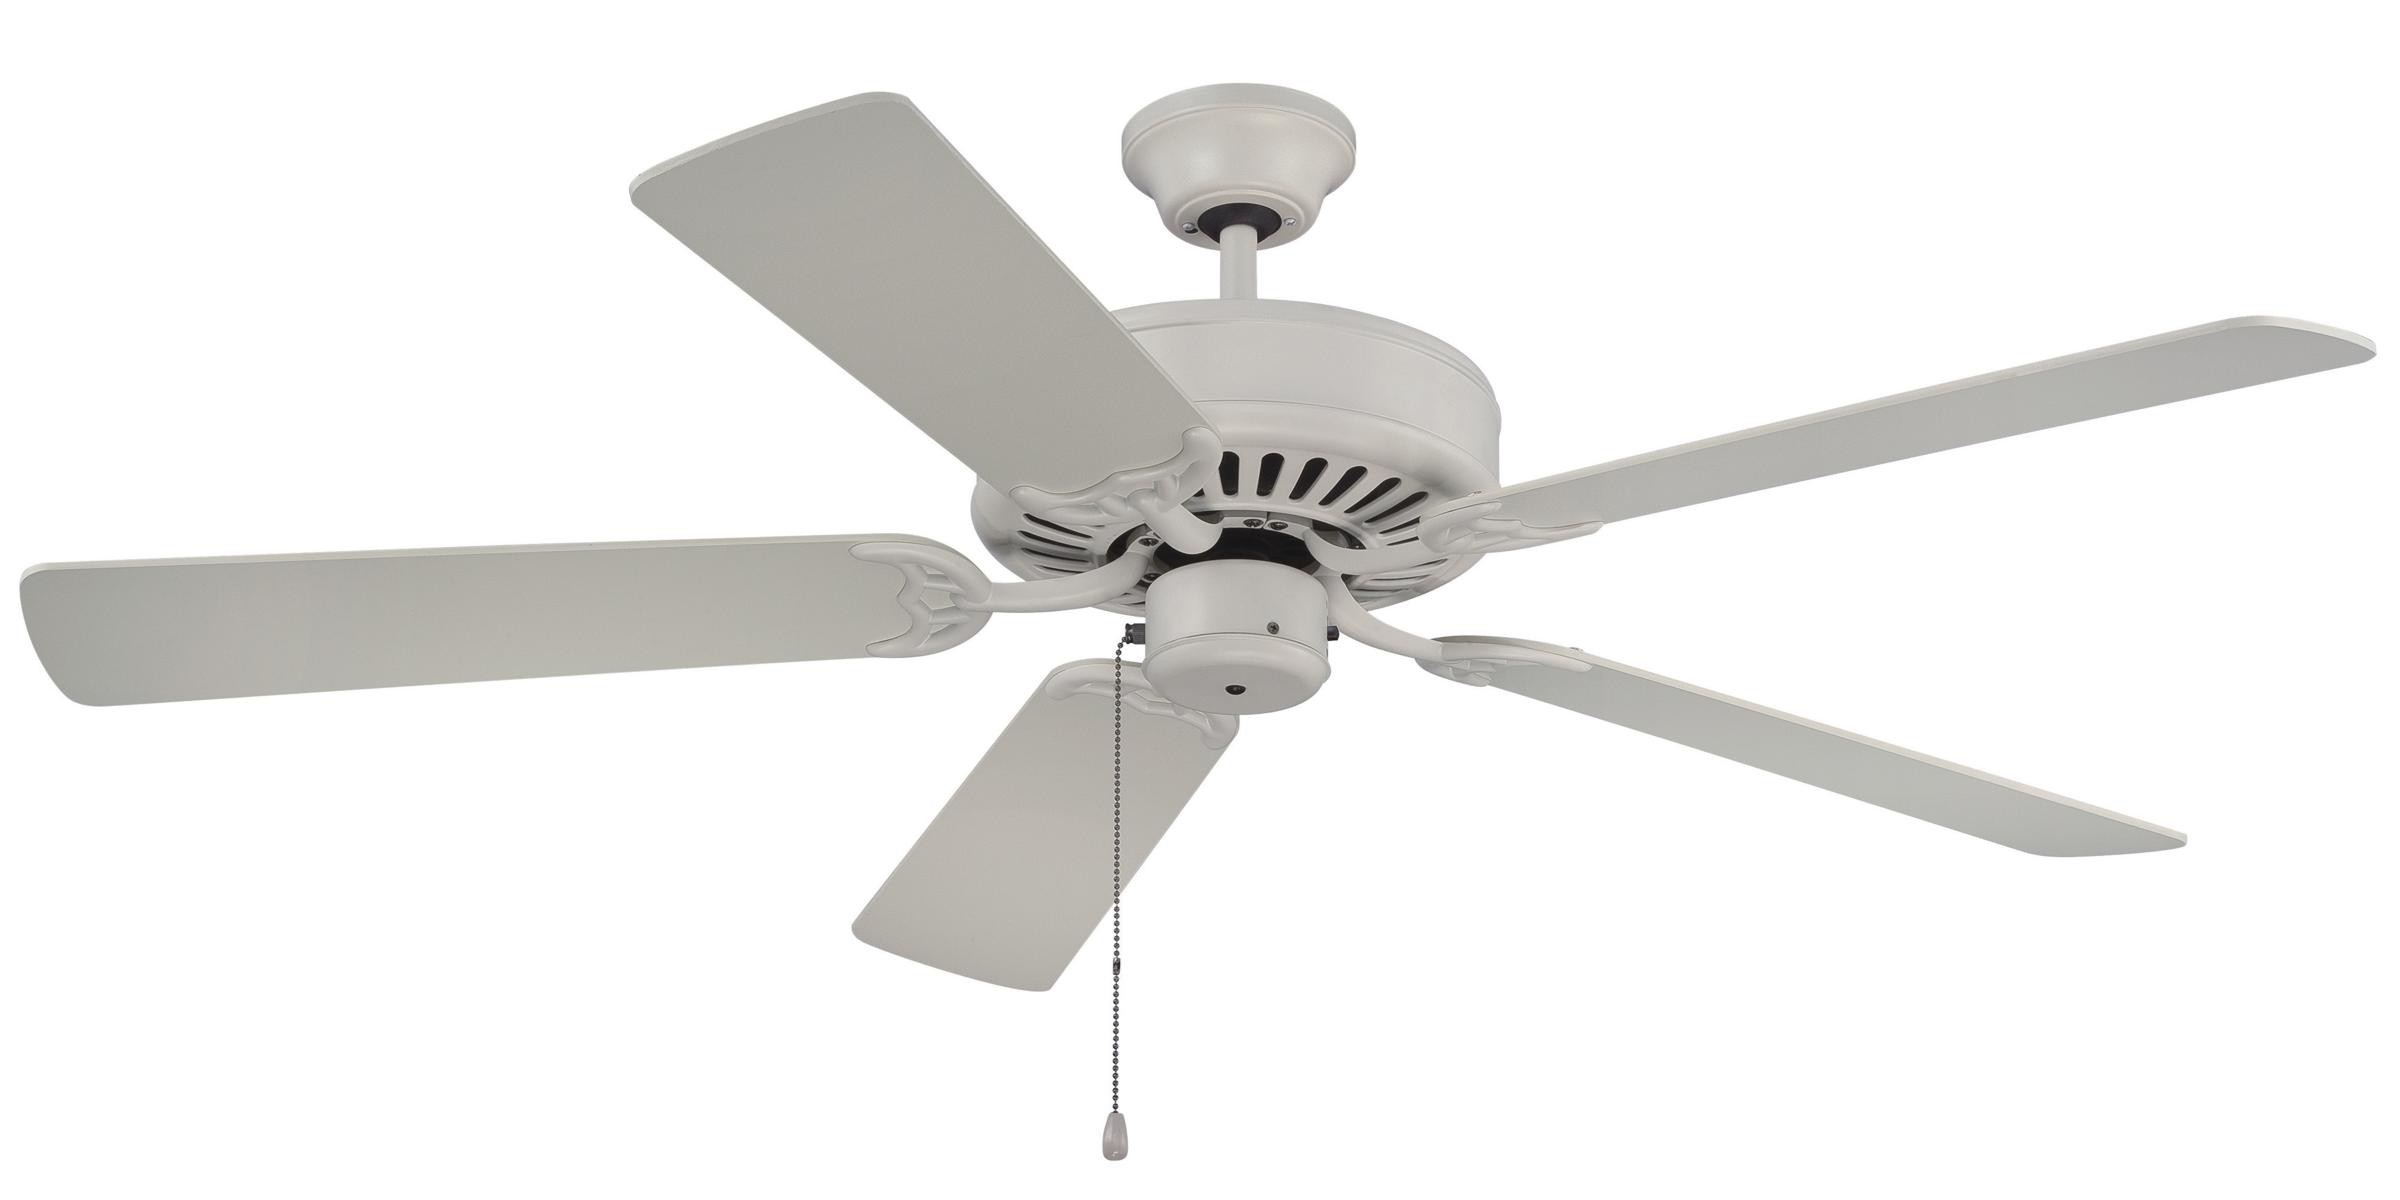 Newest Craftmade Pro Builder Ceiling Fan Model C52Aw In Antique White Within Craftmade Outdoor Ceiling Fans Craftmade (Gallery 7 of 20)